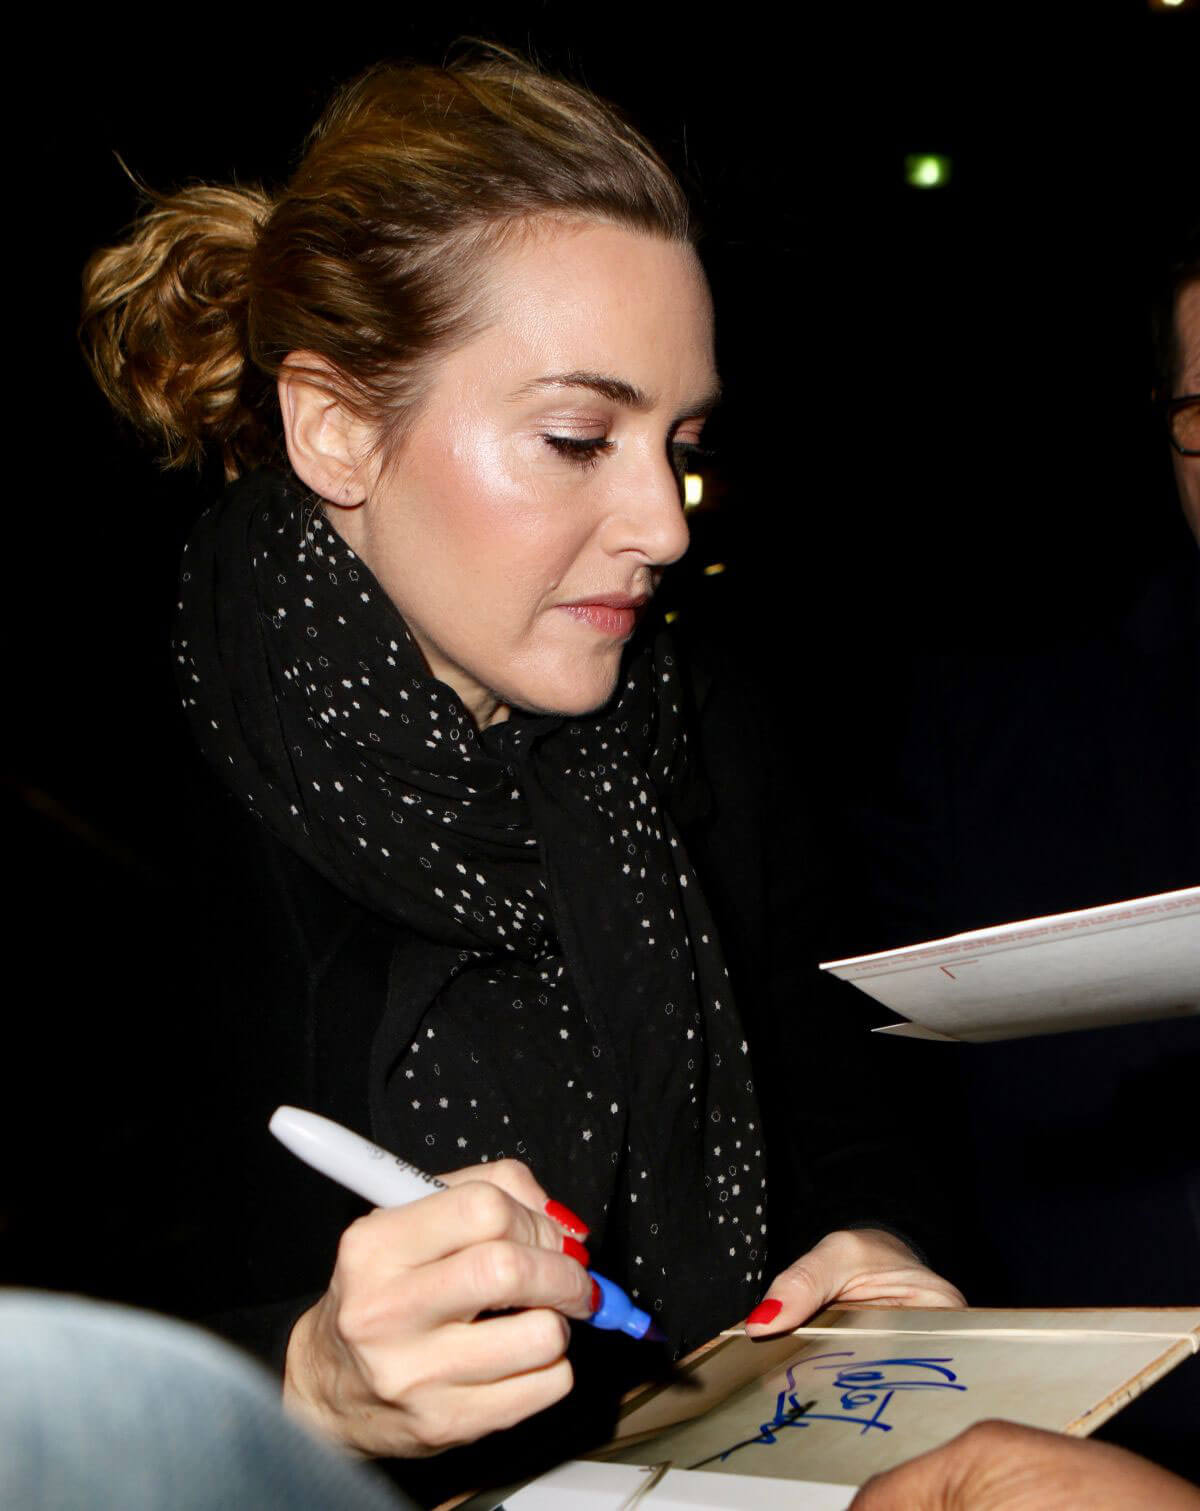 Kate Winslet wears Black Long Jacket & Jeans at Late Show with Stephen Colbert in New York